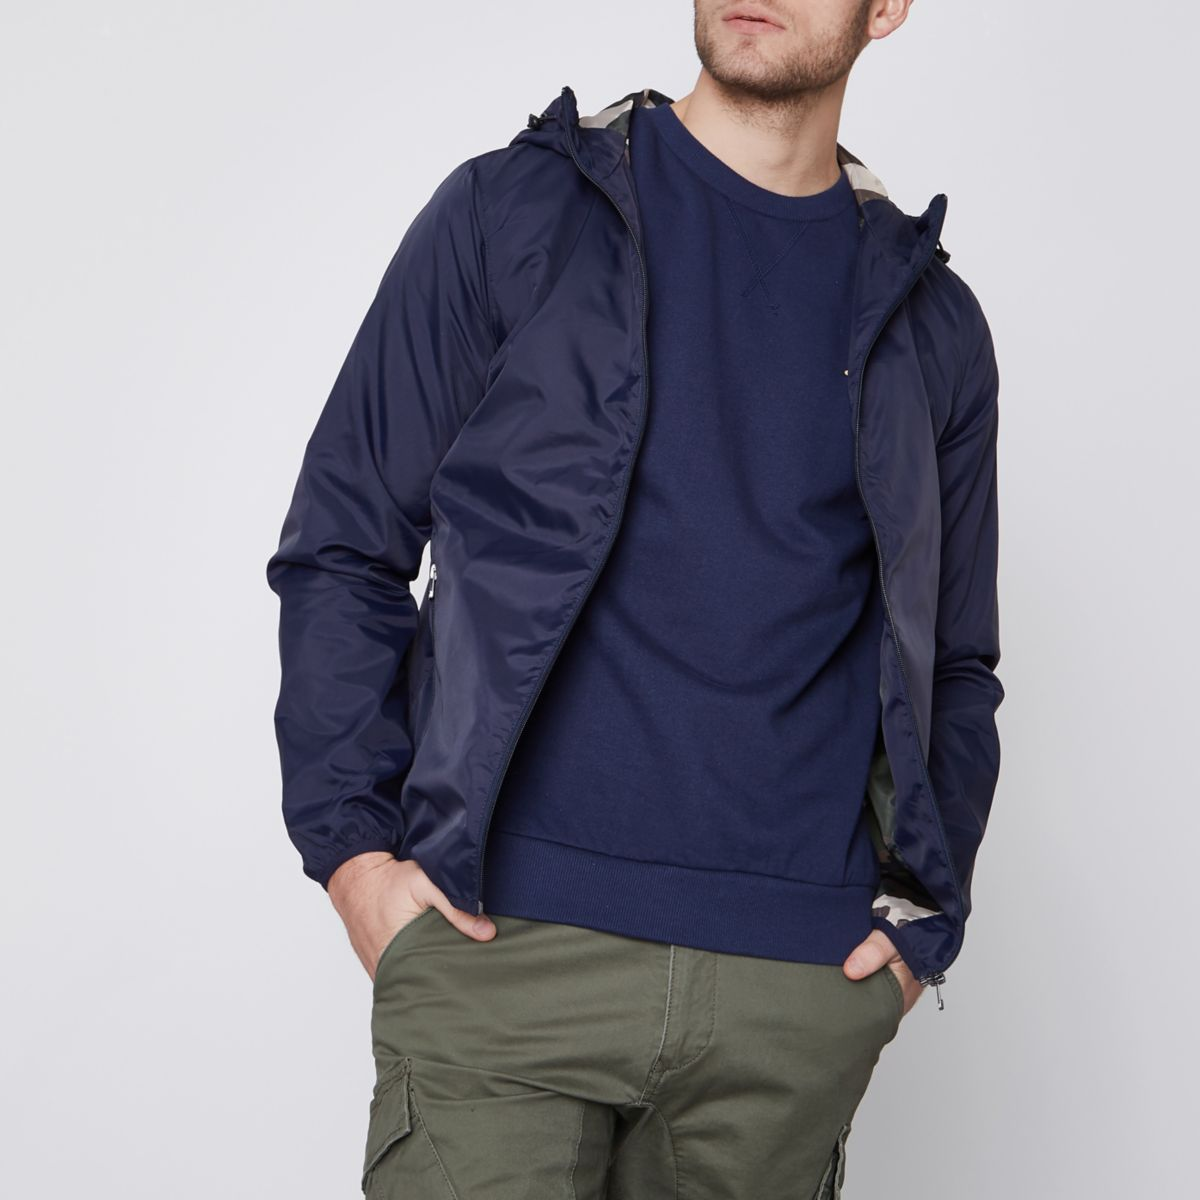 Navy Jack & Jones lightweight hooded jacket